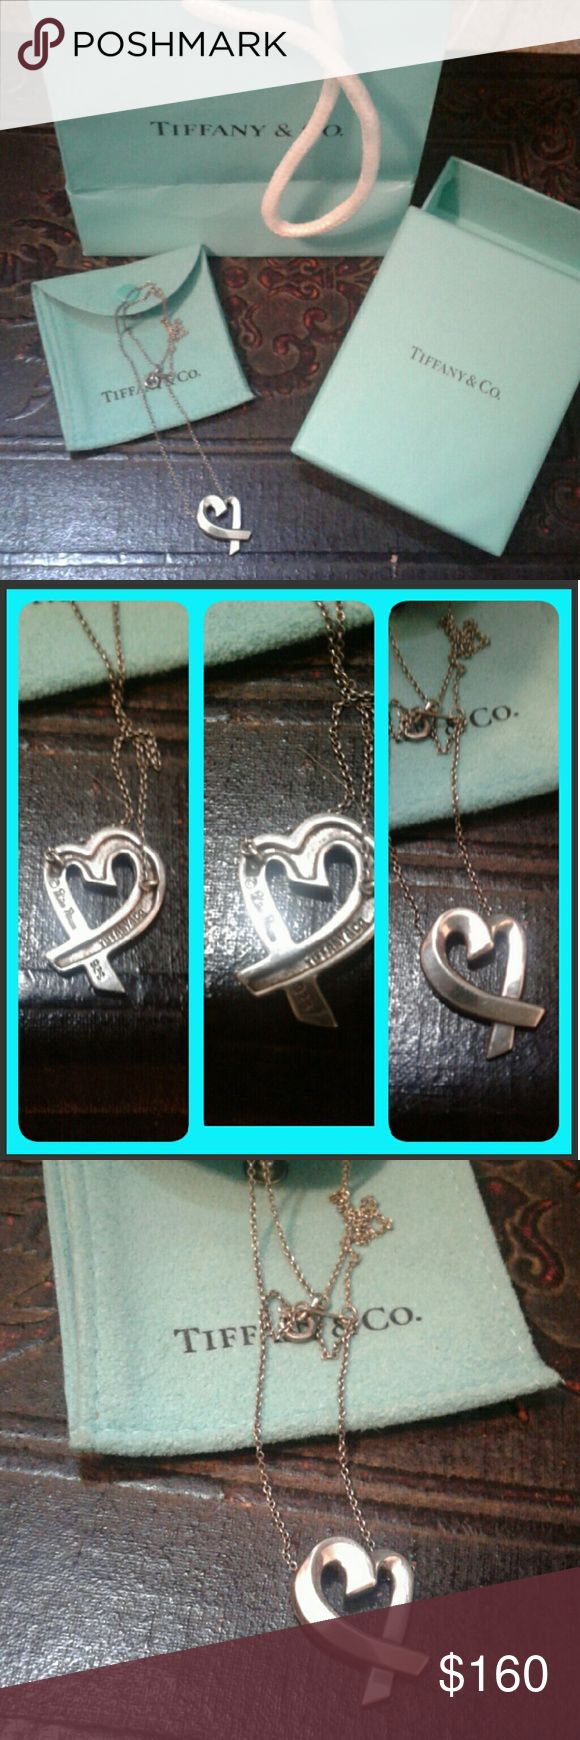 Authentic Beautiful tiffanys heart necklace This is beyond beautiful very well made and feminine great ecu condition... *no swaps looking to sell only* this is Tiffany's desighned by paloma piccaso it's got a Hood weight and is the large pendant. Will not include box and bag. Tiffany & Co. Jewelry Necklaces